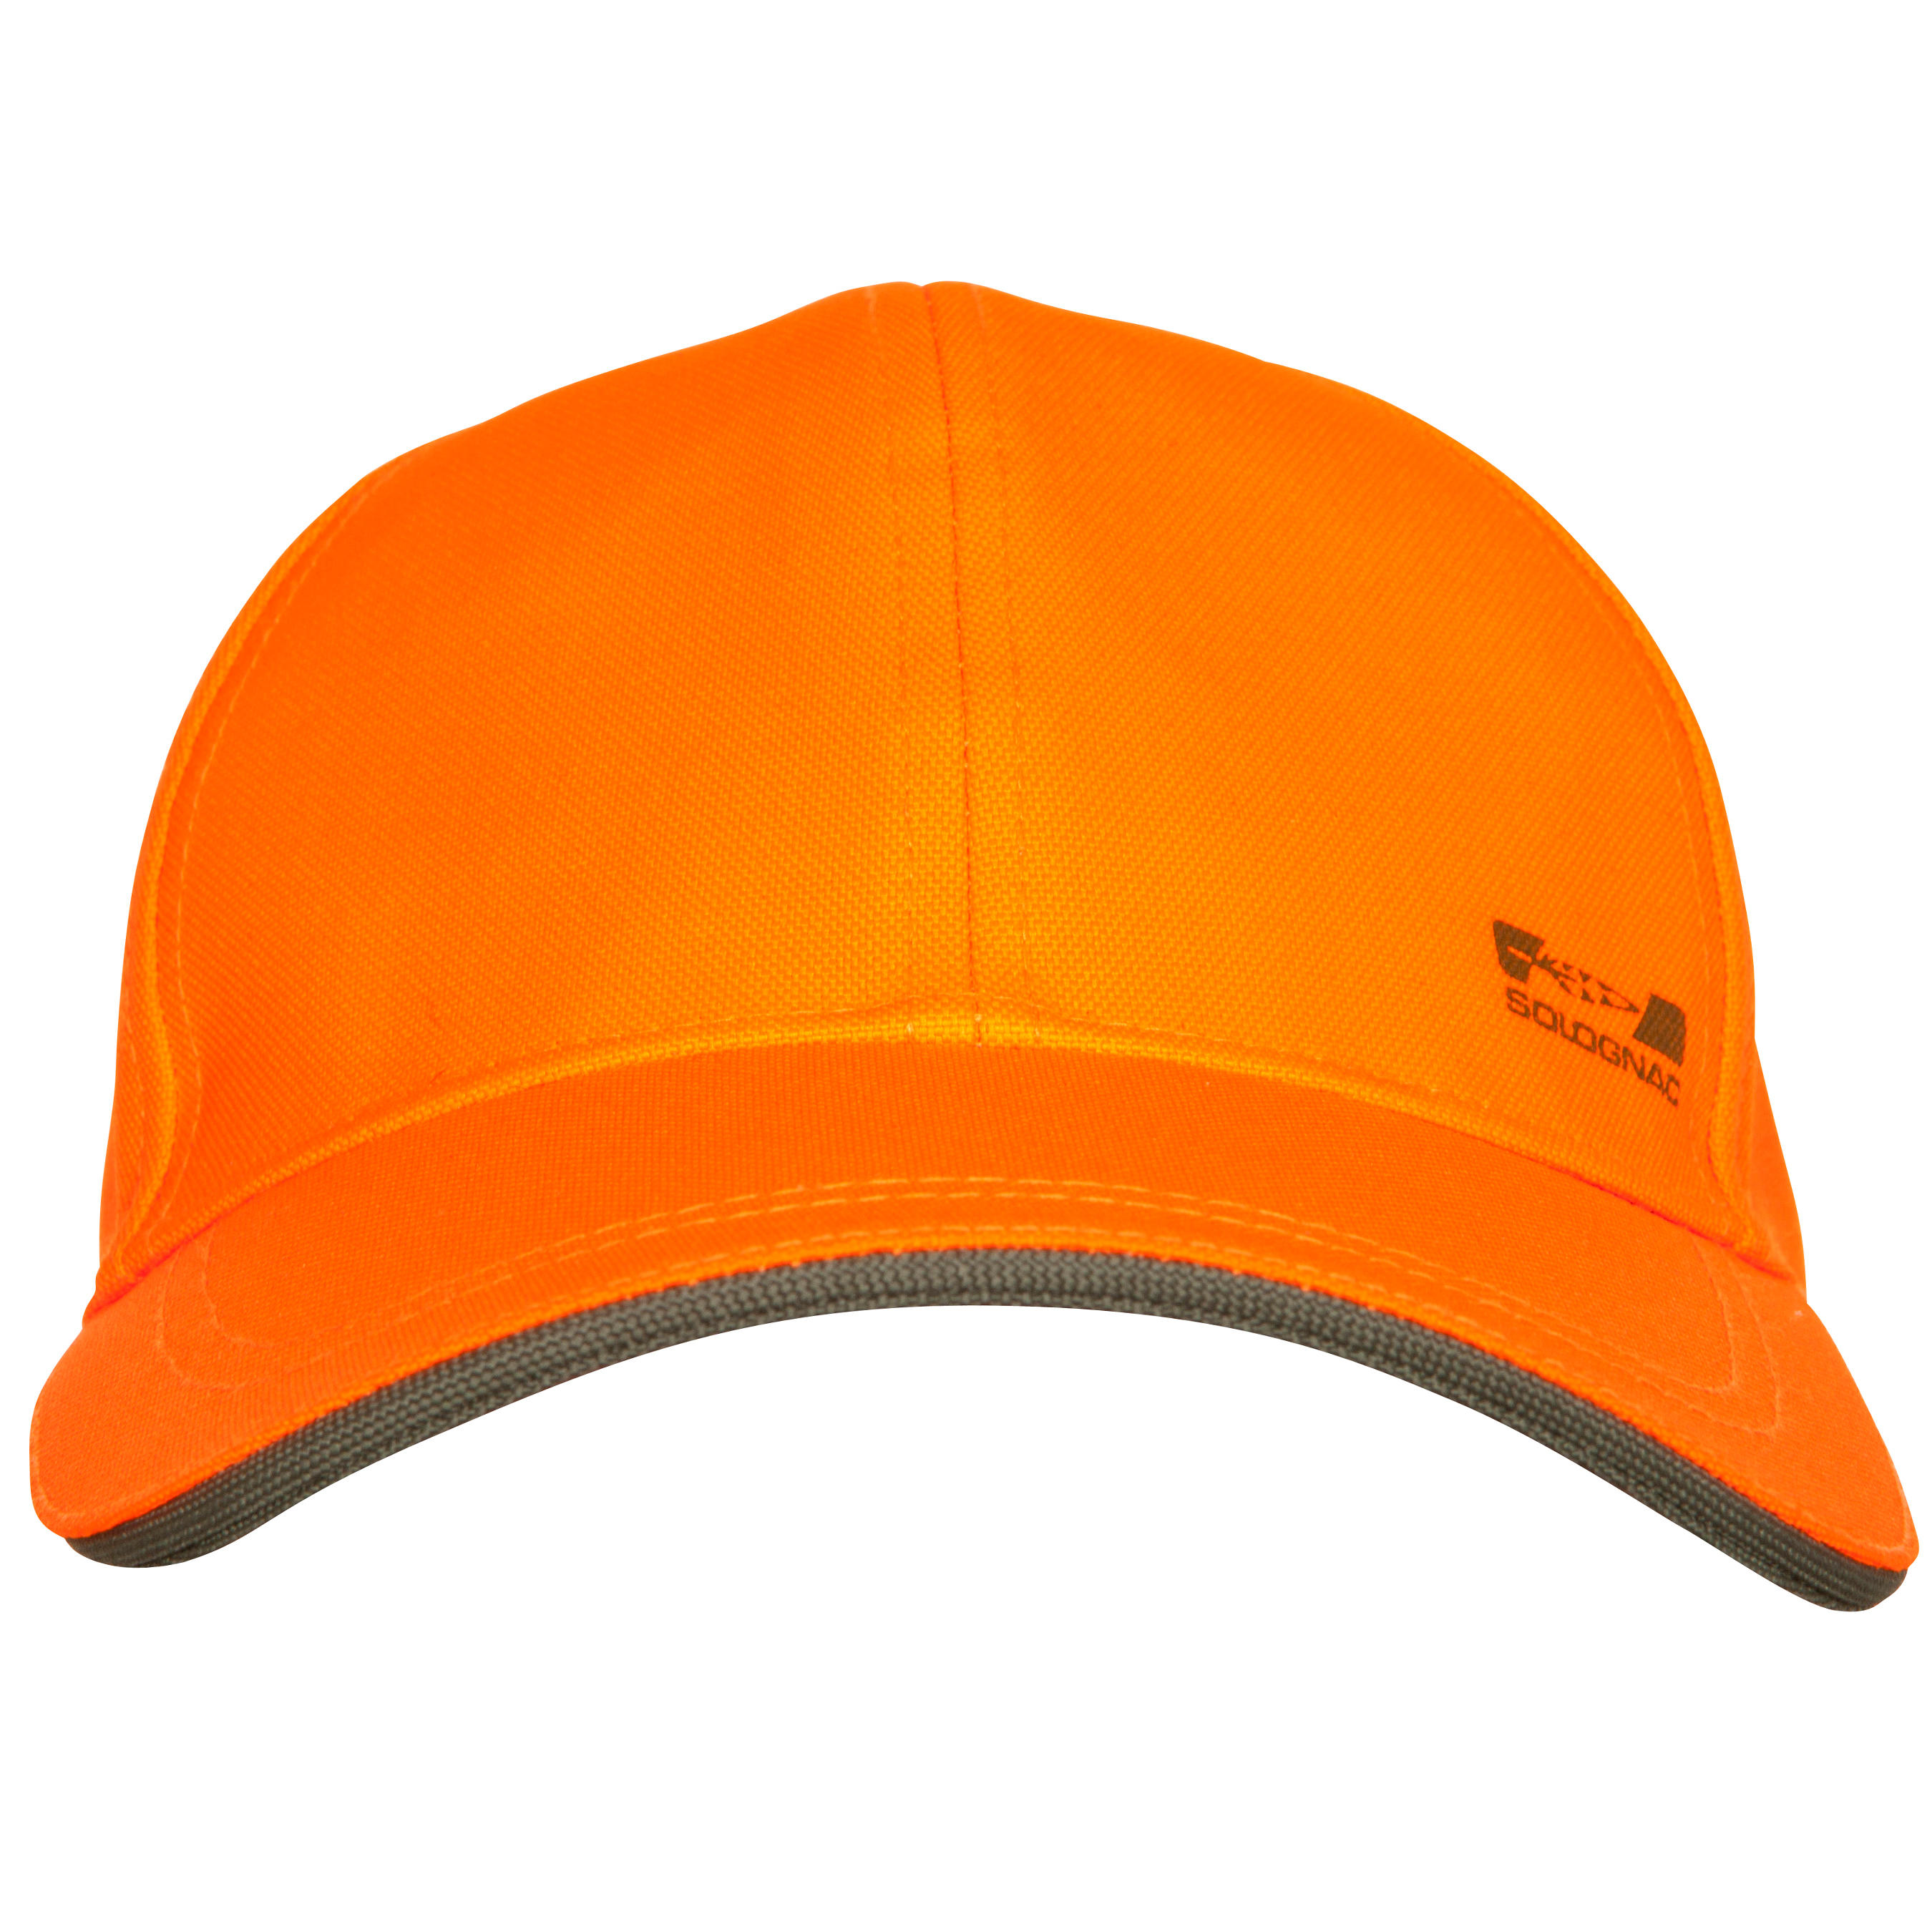 Casquette chasse Supertrack fluo